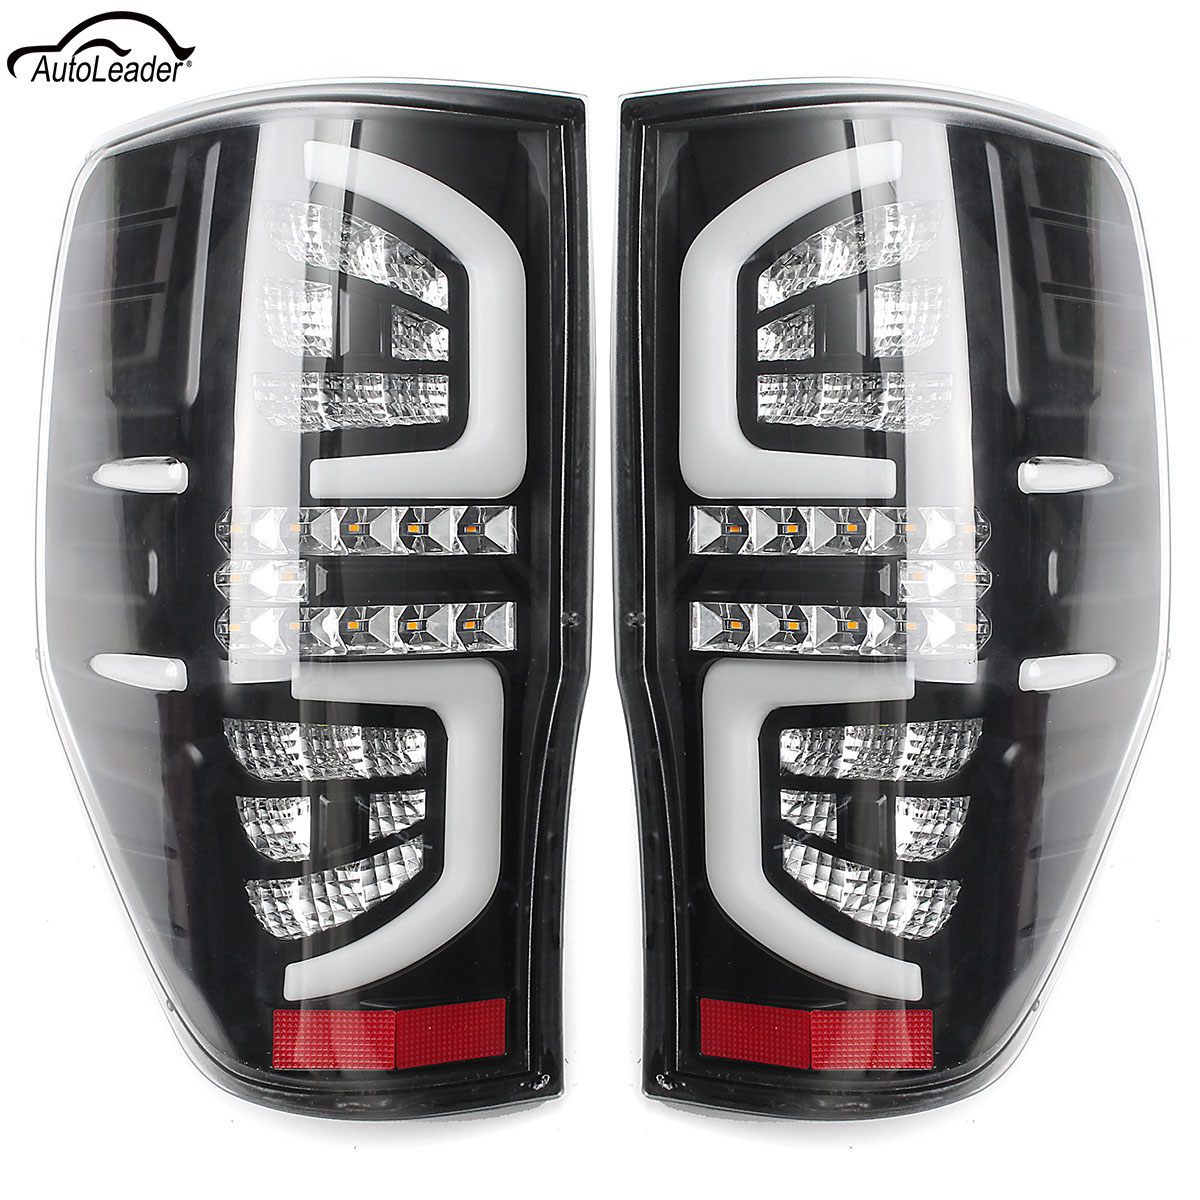 for Ford Ranger Tail Light 1 Pair LED Stop Working Lights Rear Lamp Clear Read Turning Feature Fit PX Mk1/Mk2 XL XLS XLT 2011-up 2 pcs pair inside tail lamp rear light inner for ford mondeo fusion 2011 2012